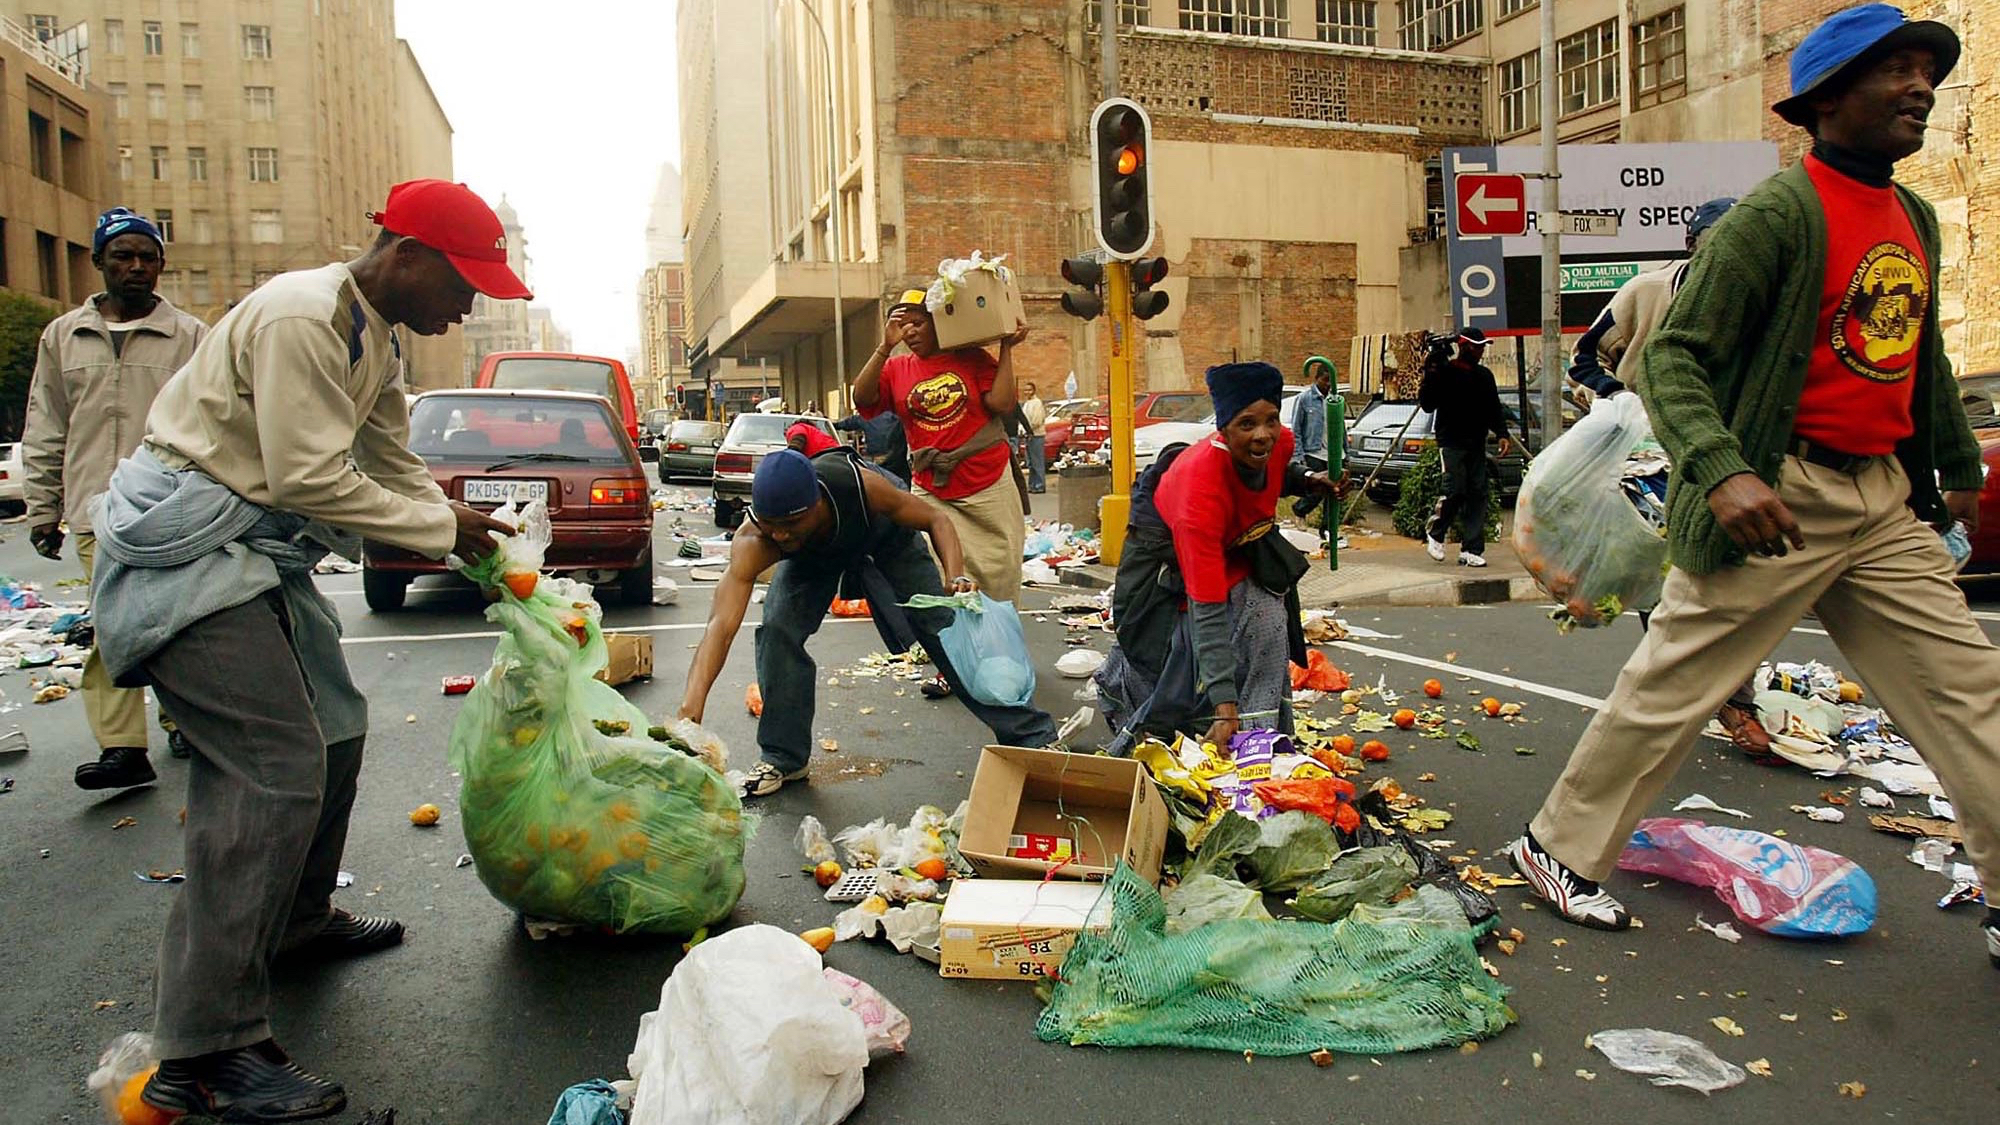 Striking municipal workers trash the streets as they protest in downtown Johannesburg, Thursday Aug. 11, 2005. The strike is part of a wave of industrial unrest involving airline staff, goldminers, shop assistants and the municipal workers angry that the economic benefits of apartheid's demise have been slow to filter down. (AP PhotO)